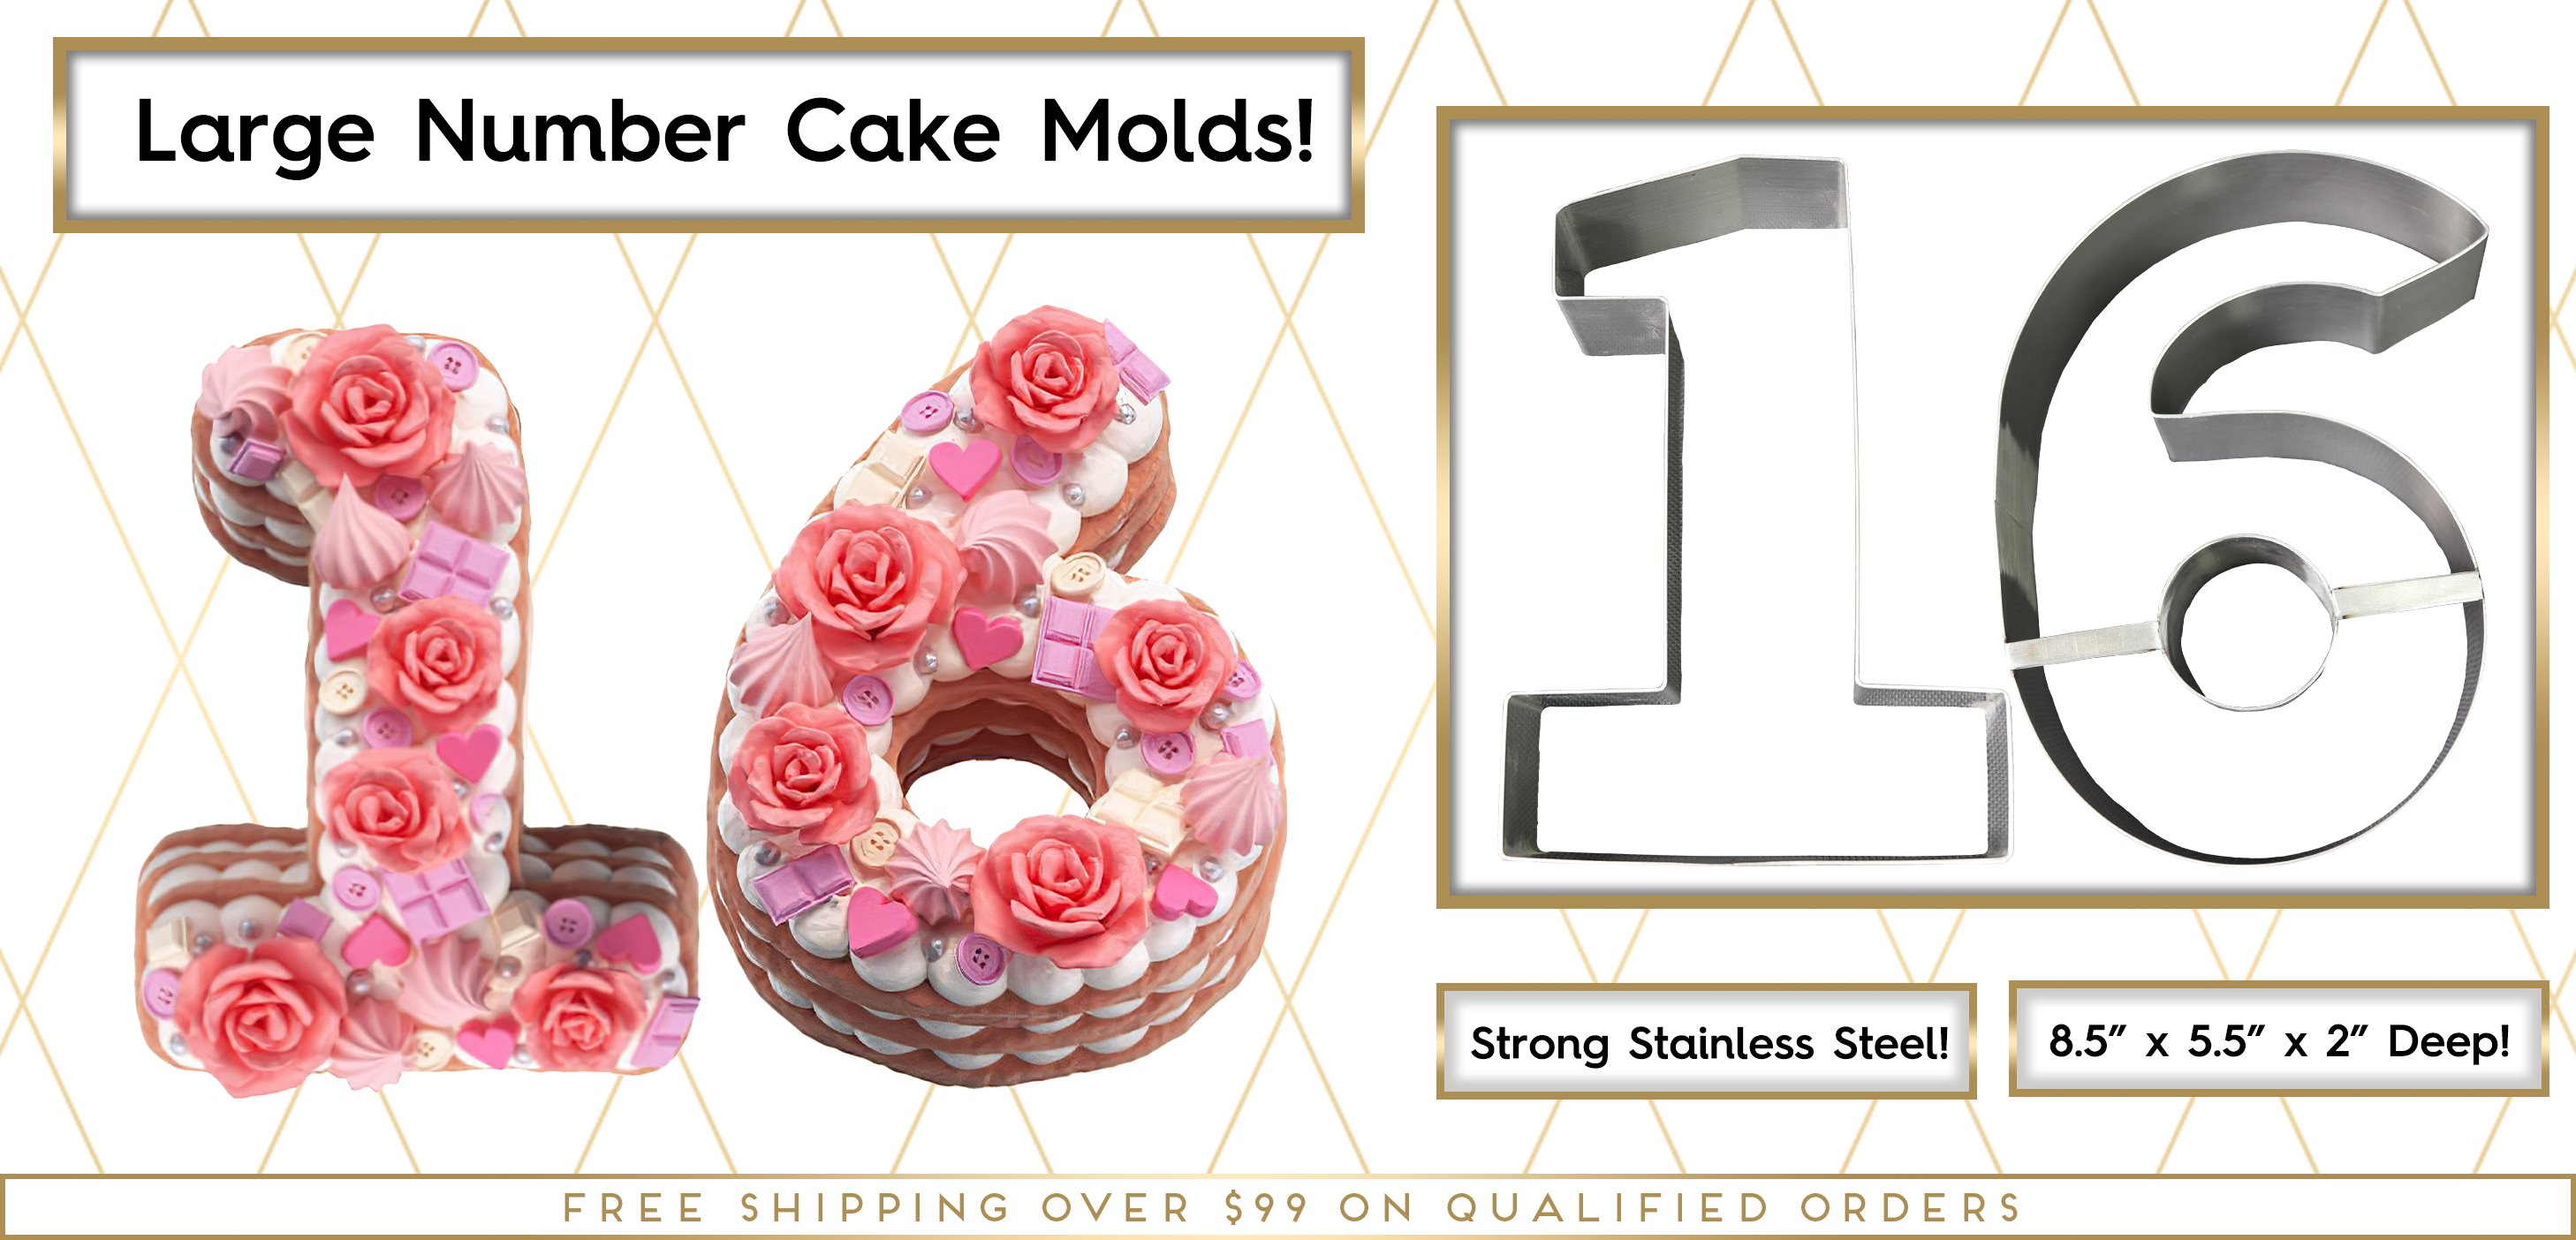 Number Cake Molds